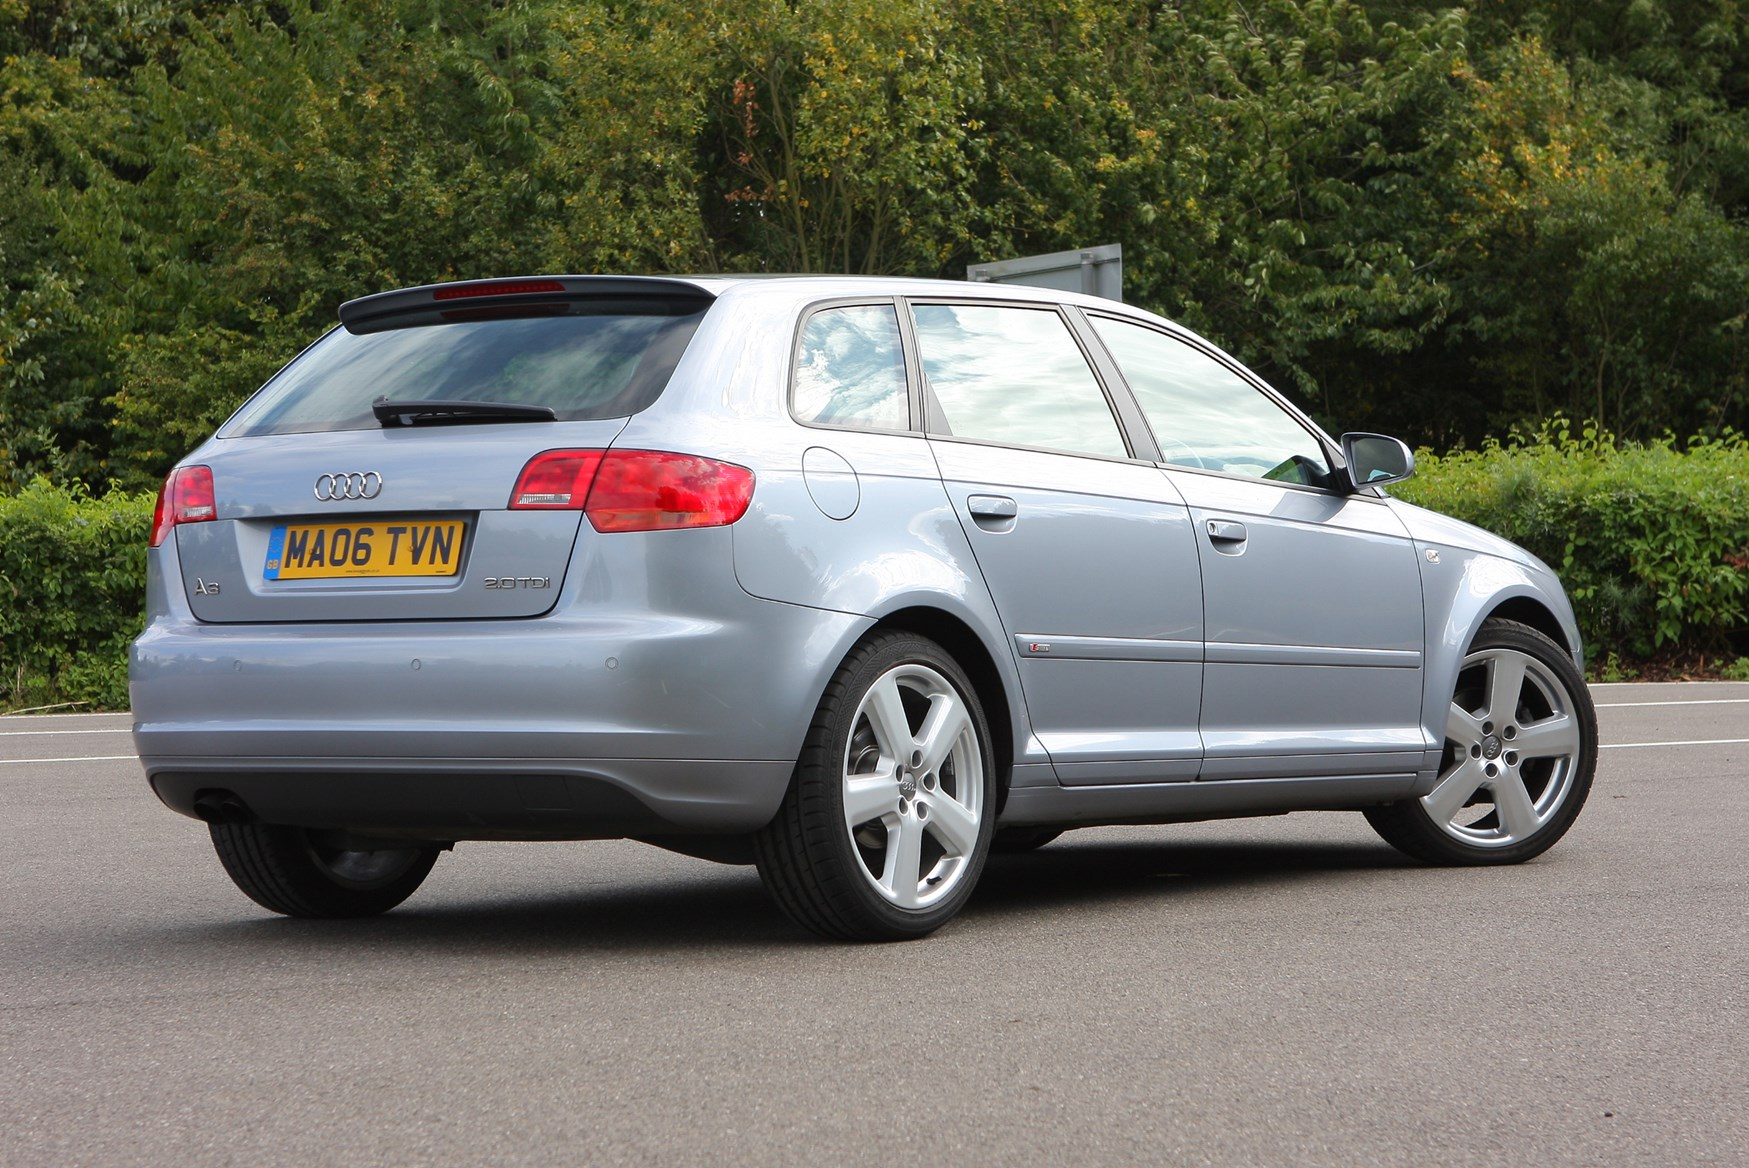 Audi A3 Sportback (2004 - 2013) Features, Equipment and ...